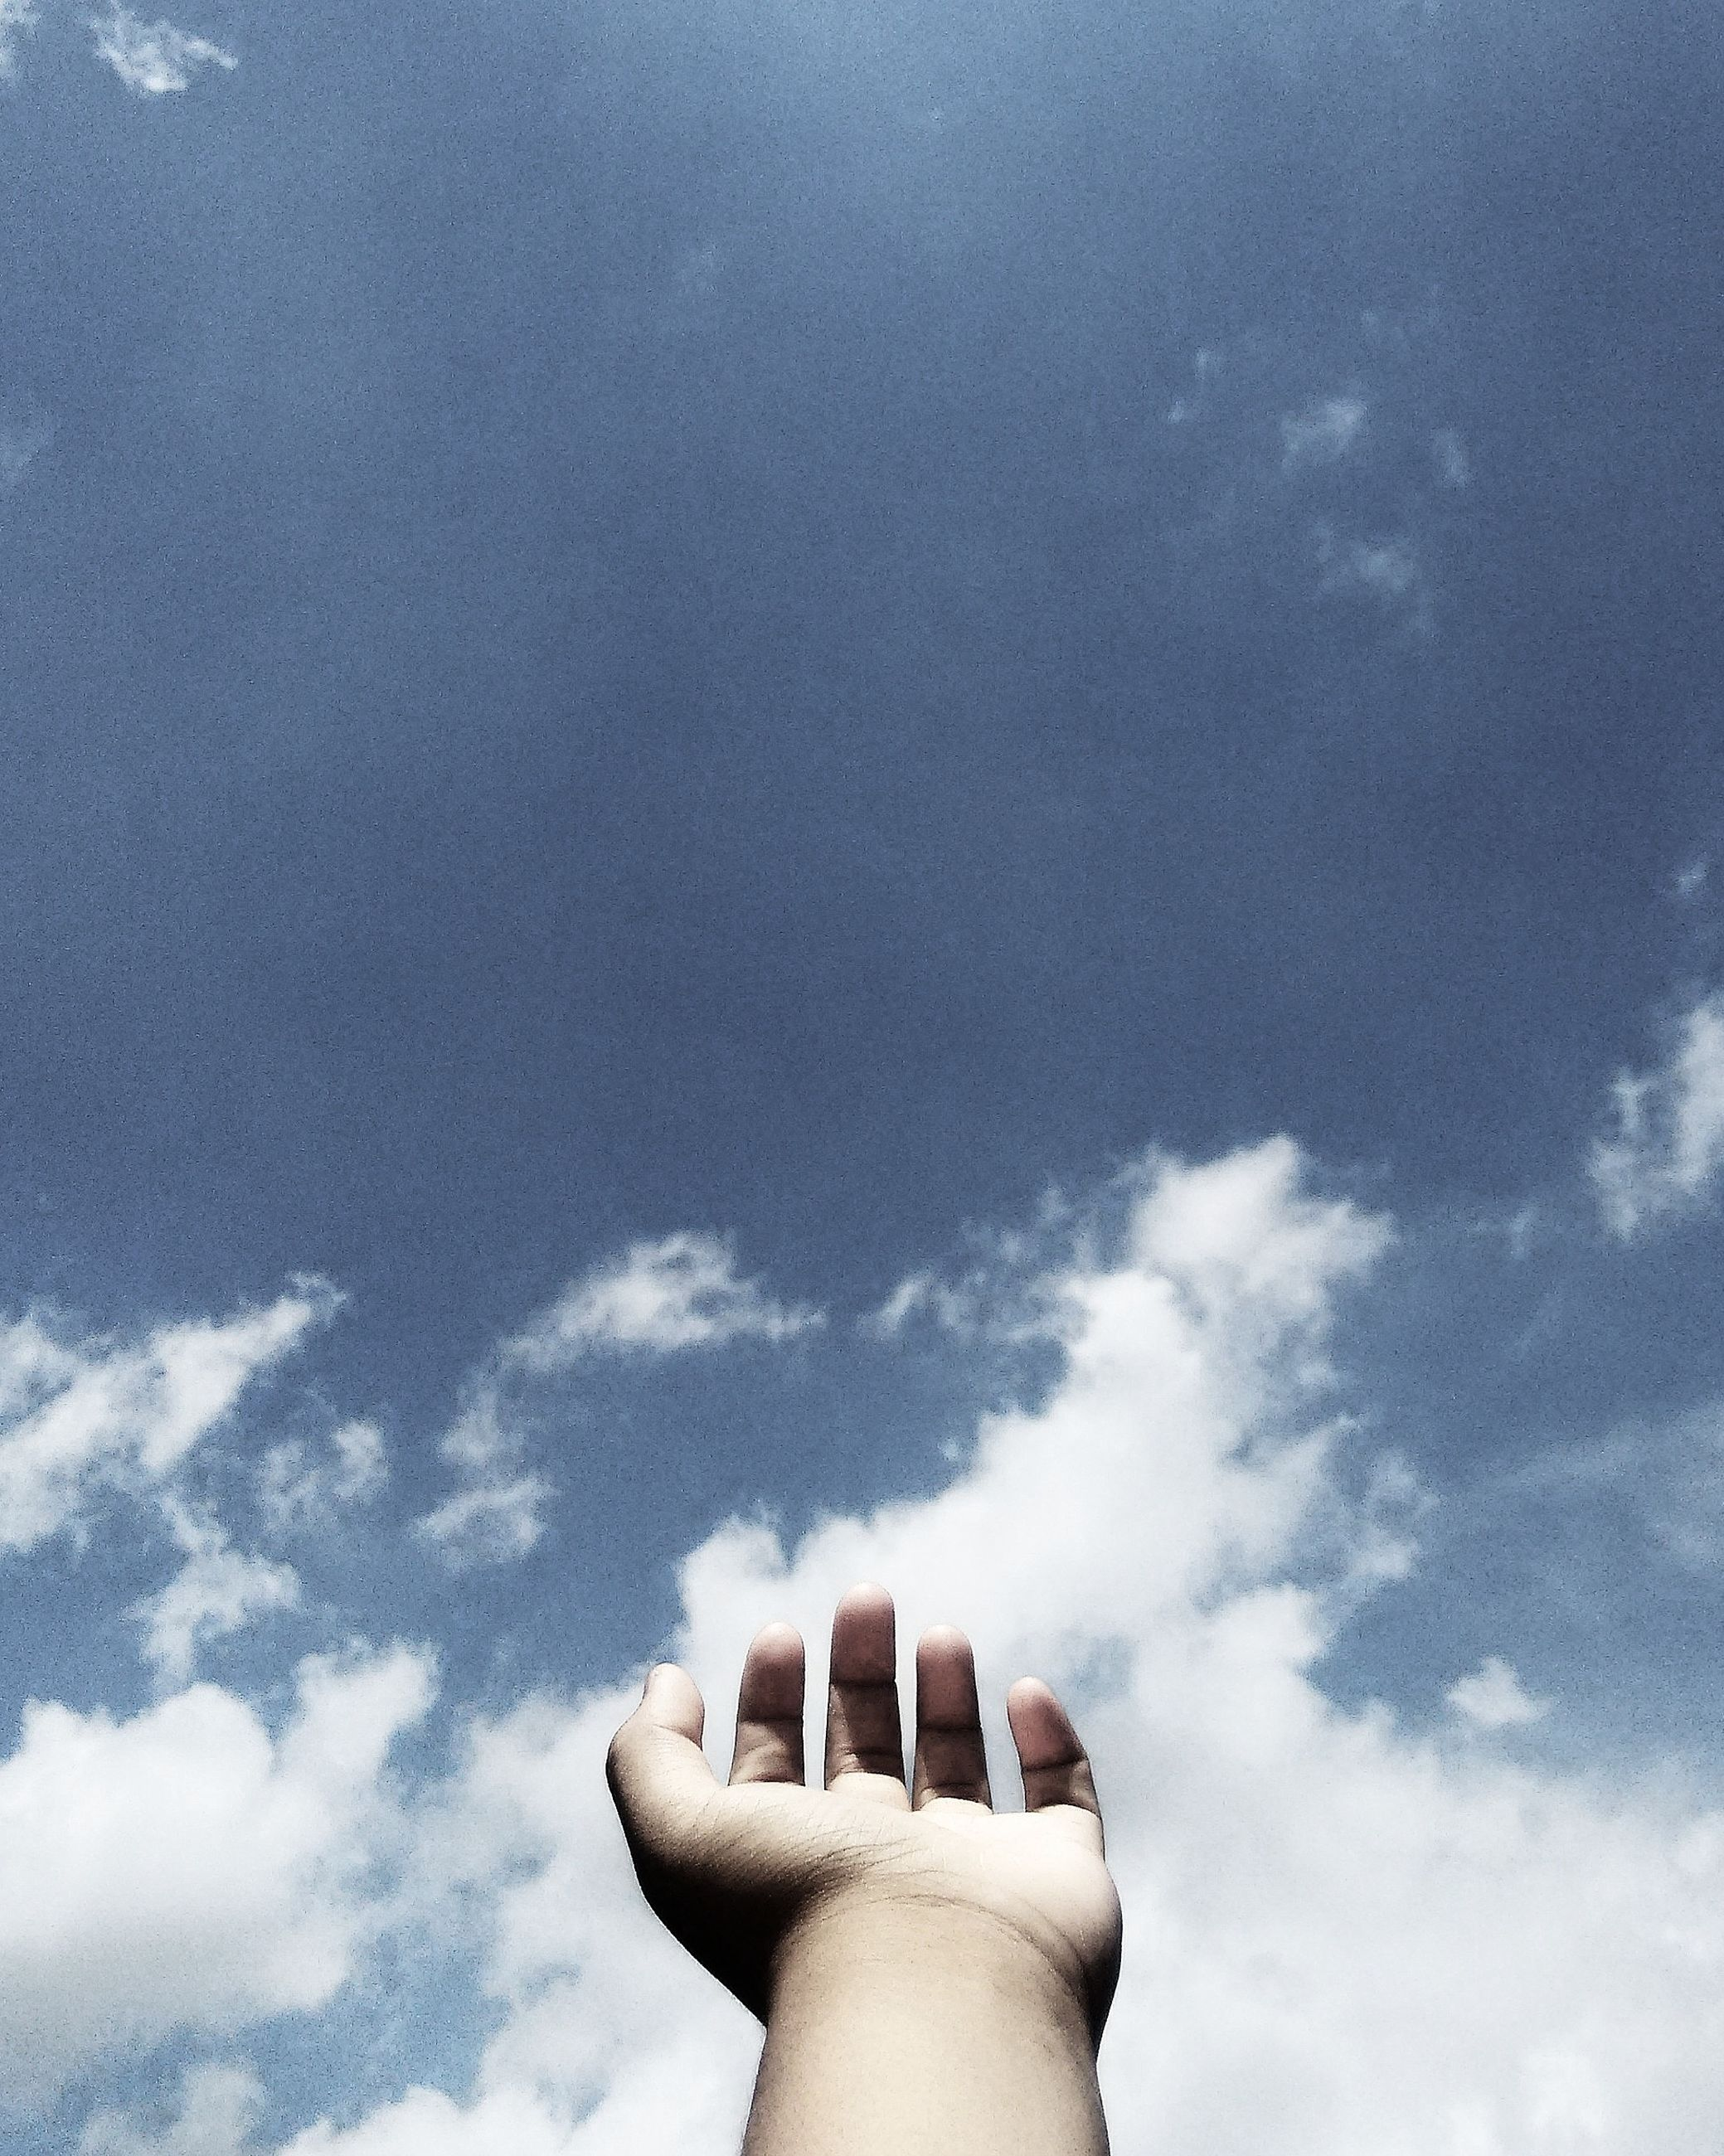 LOW ANGLE VIEW OF CROPPED HAND AGAINST THE SKY